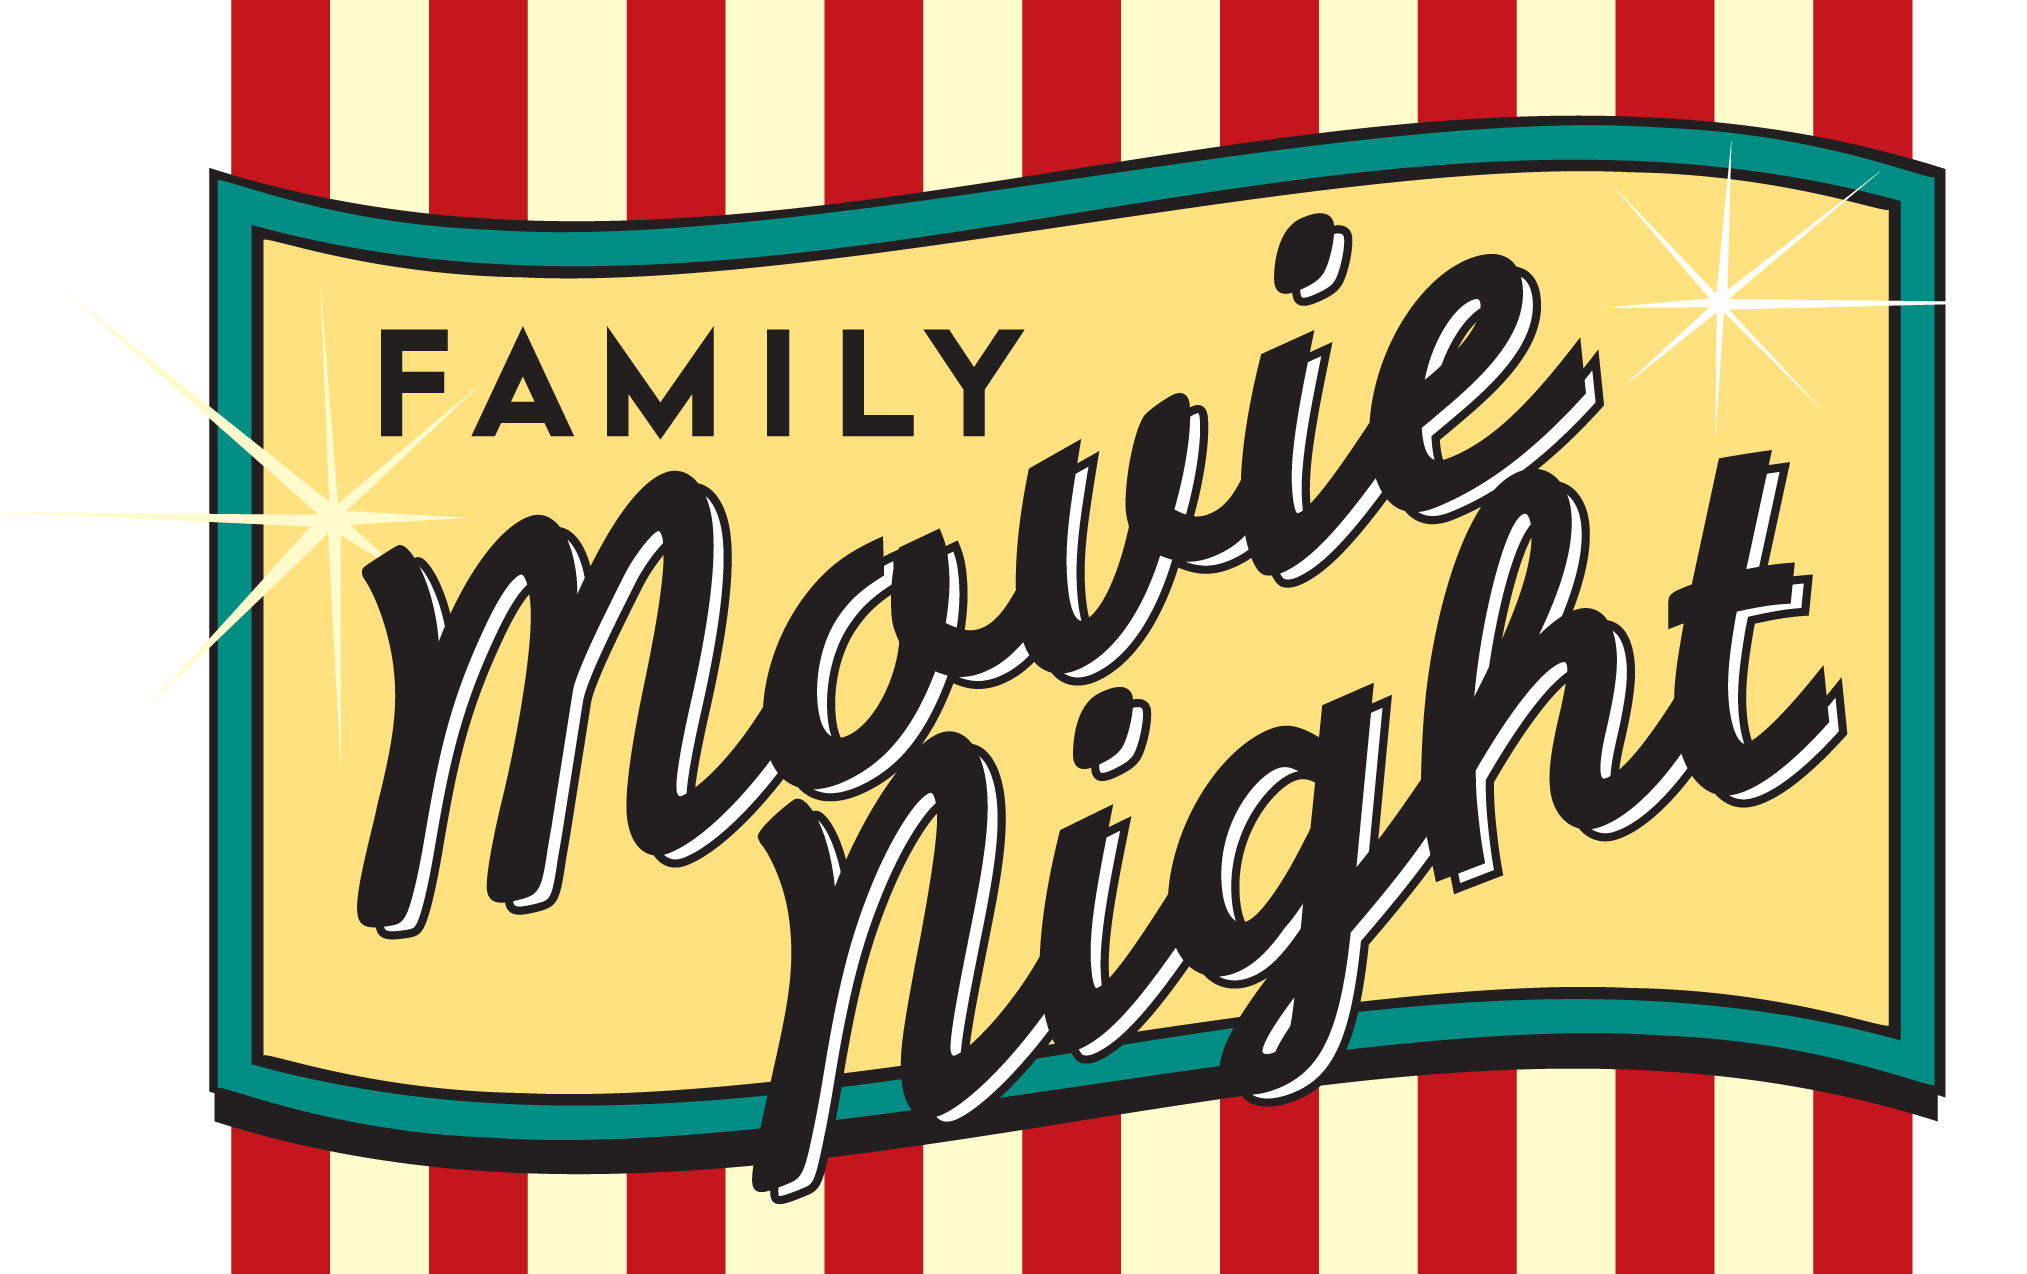 http://www.clipartkid.com/images/158/big-wednesday-family-movie-nights-wwXIIu-clipart.jpg